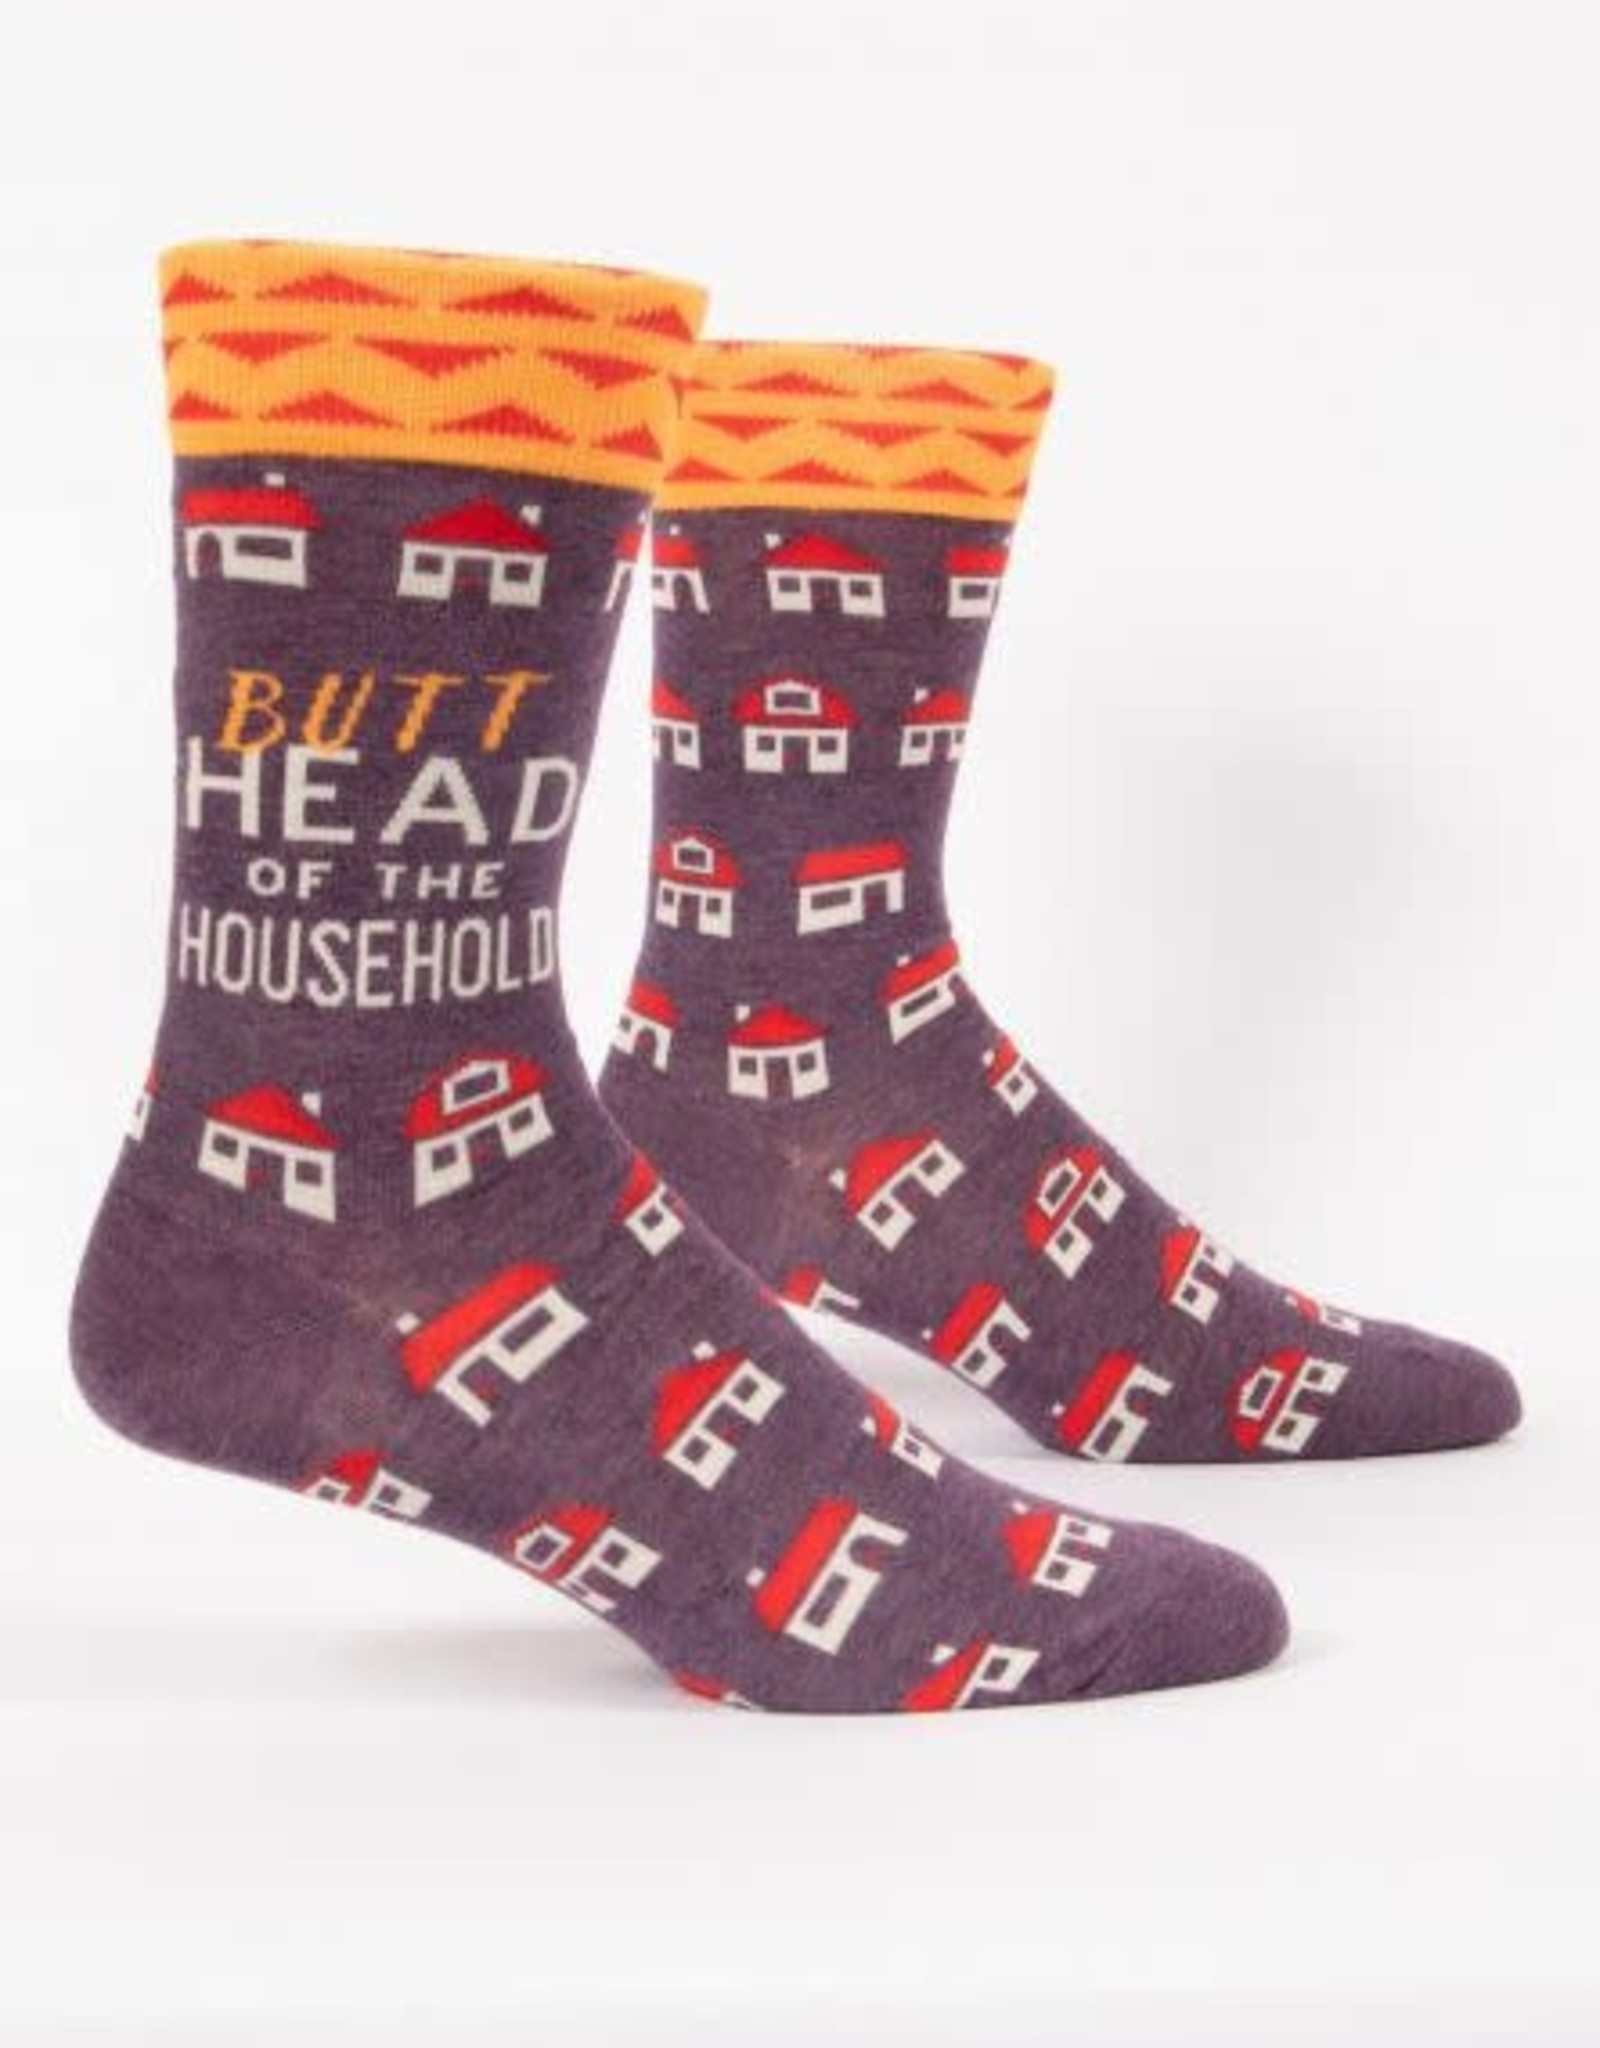 Blue Q Blue Q Men's Crew Socks Butthead Household